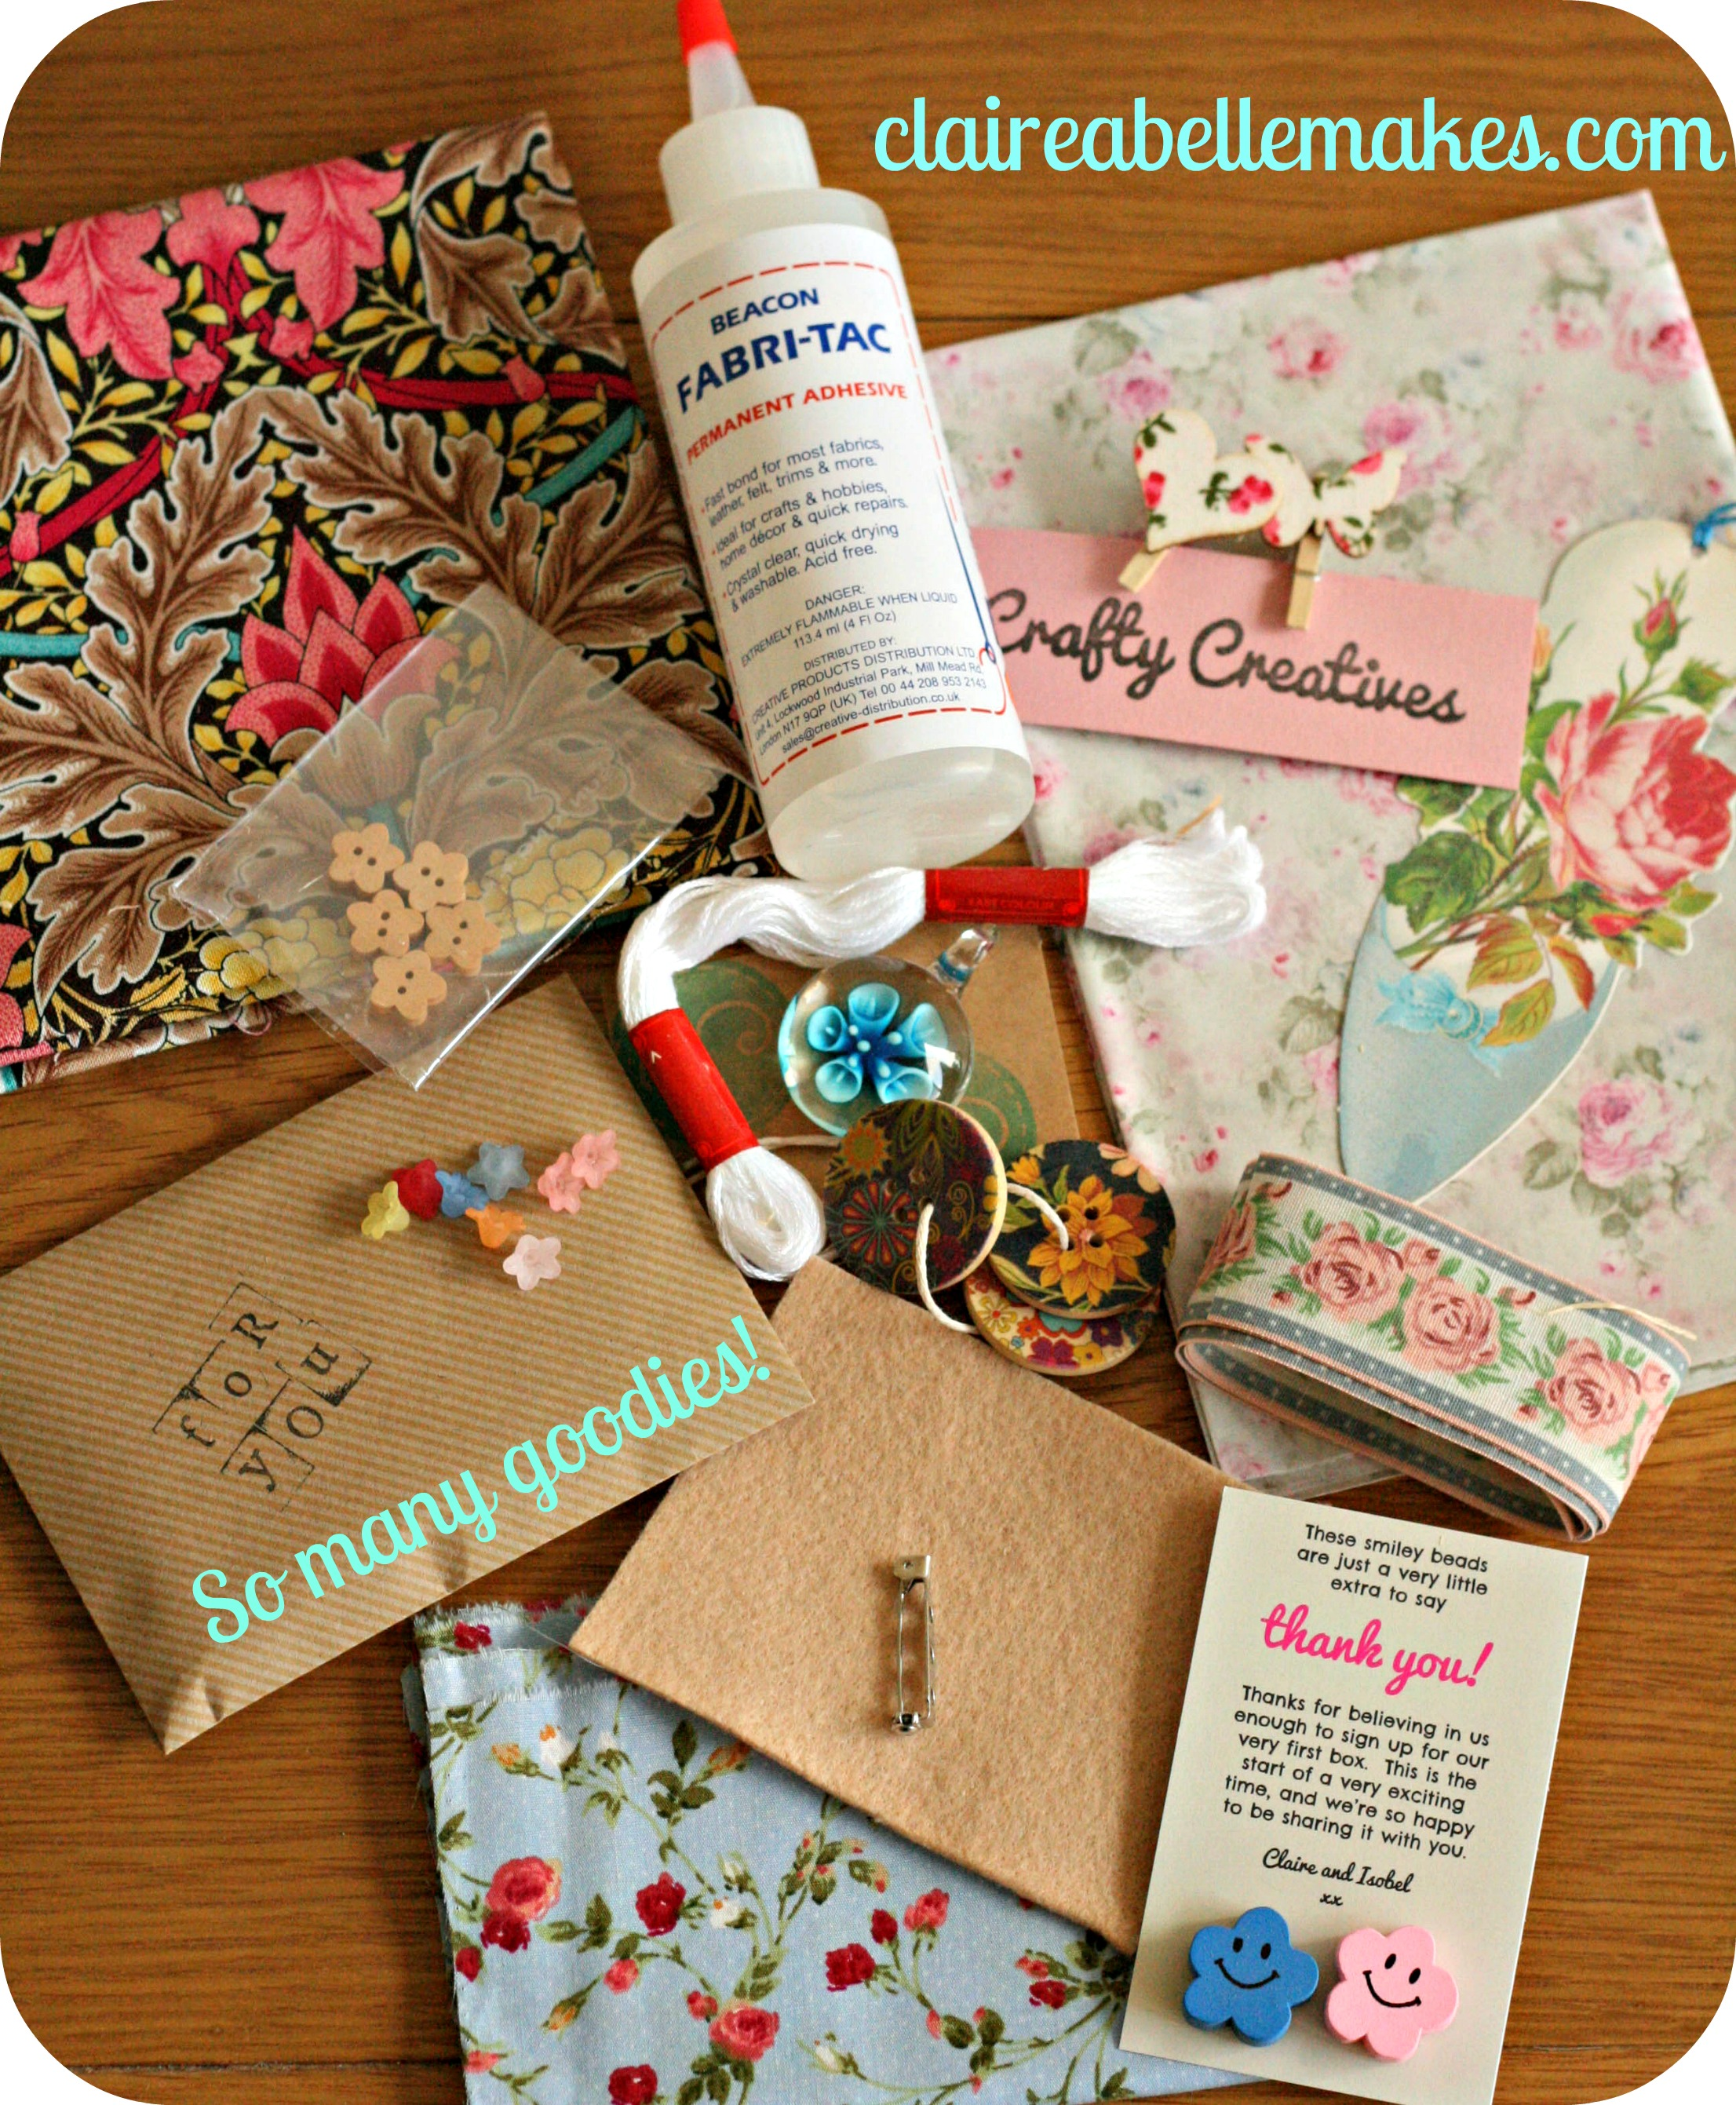 Crafty Creatives on claireabellemakes